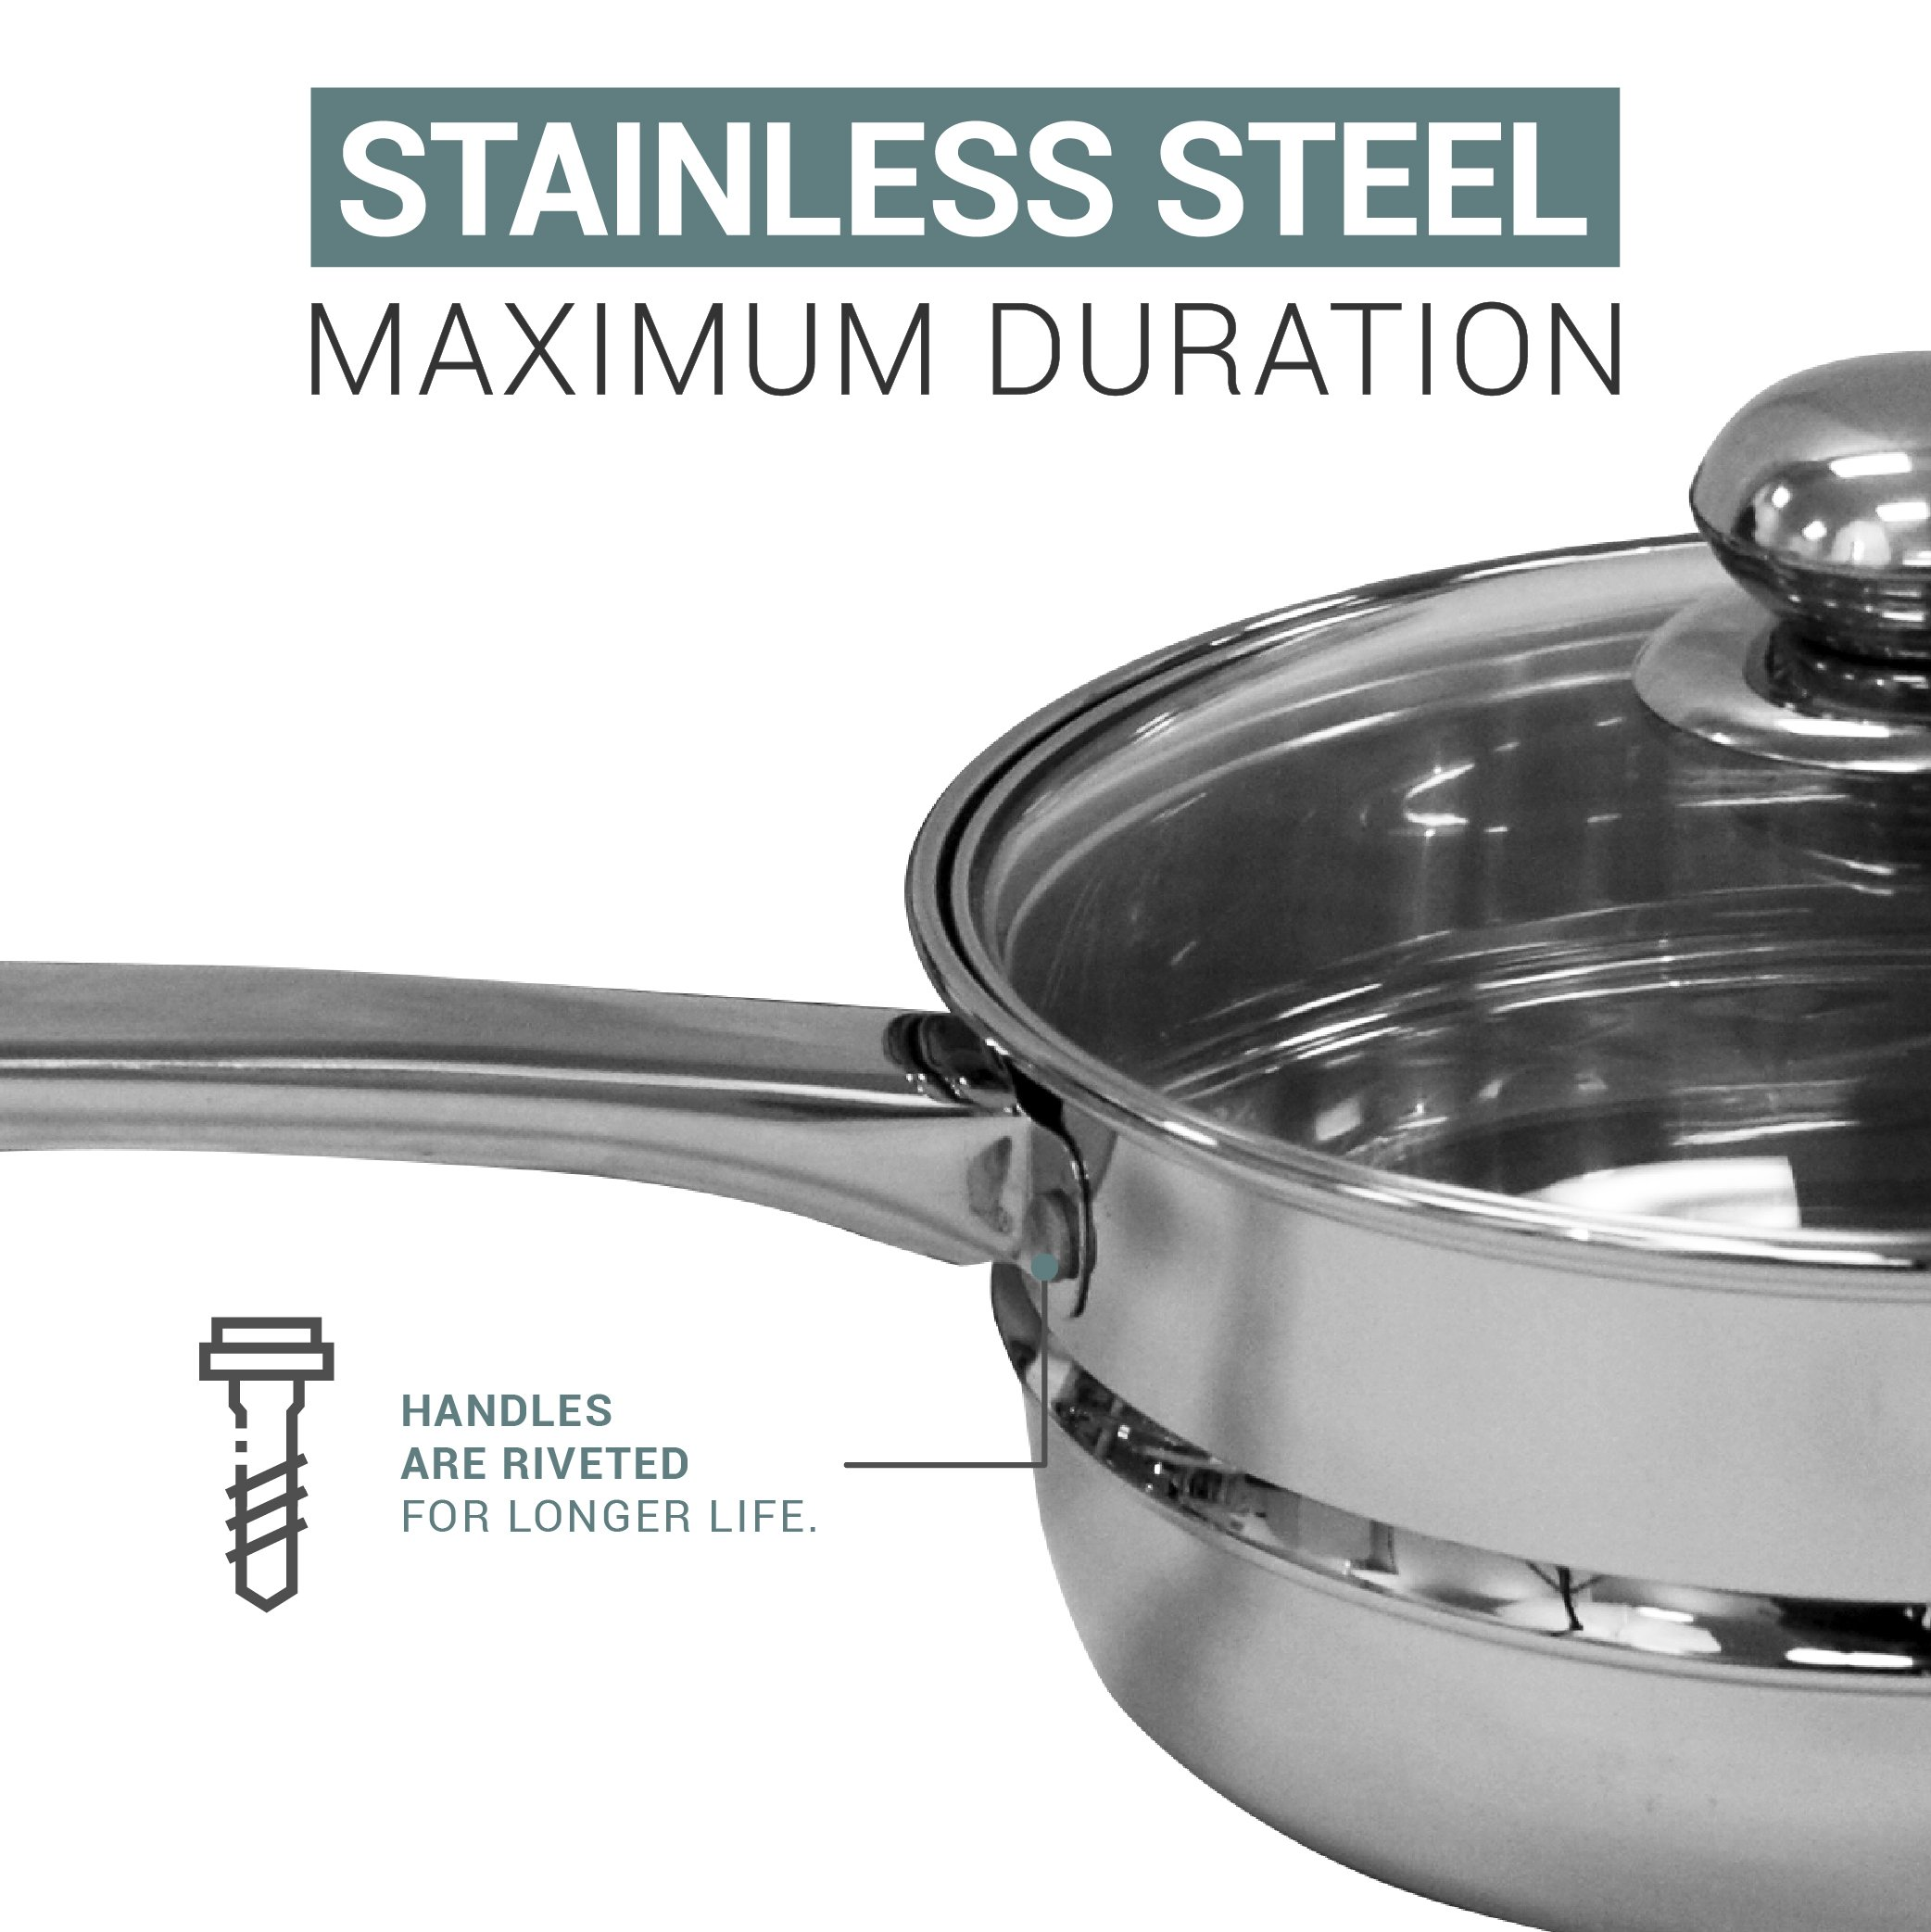 Double Boiler & Steamer Pot by Purelife - Induction Cookware Stainless Steel Chocolate Melting & Cooking Pot with Tempered Glass Lid, Dishwasher & Oven Safe - 3 Qt & 4 Pieces Kitchen Set by purelife (Image #5)